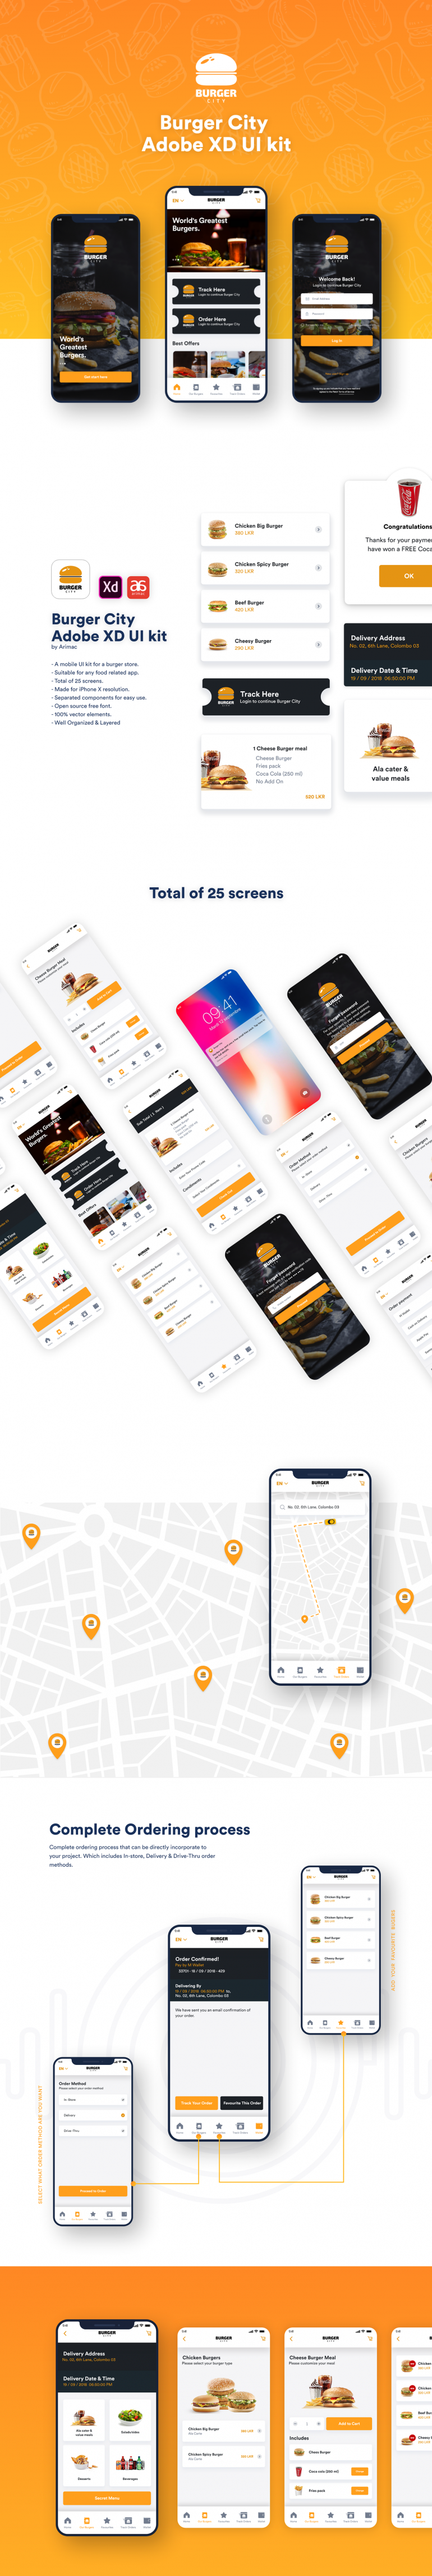 Burger City – Adobe XD UI kit